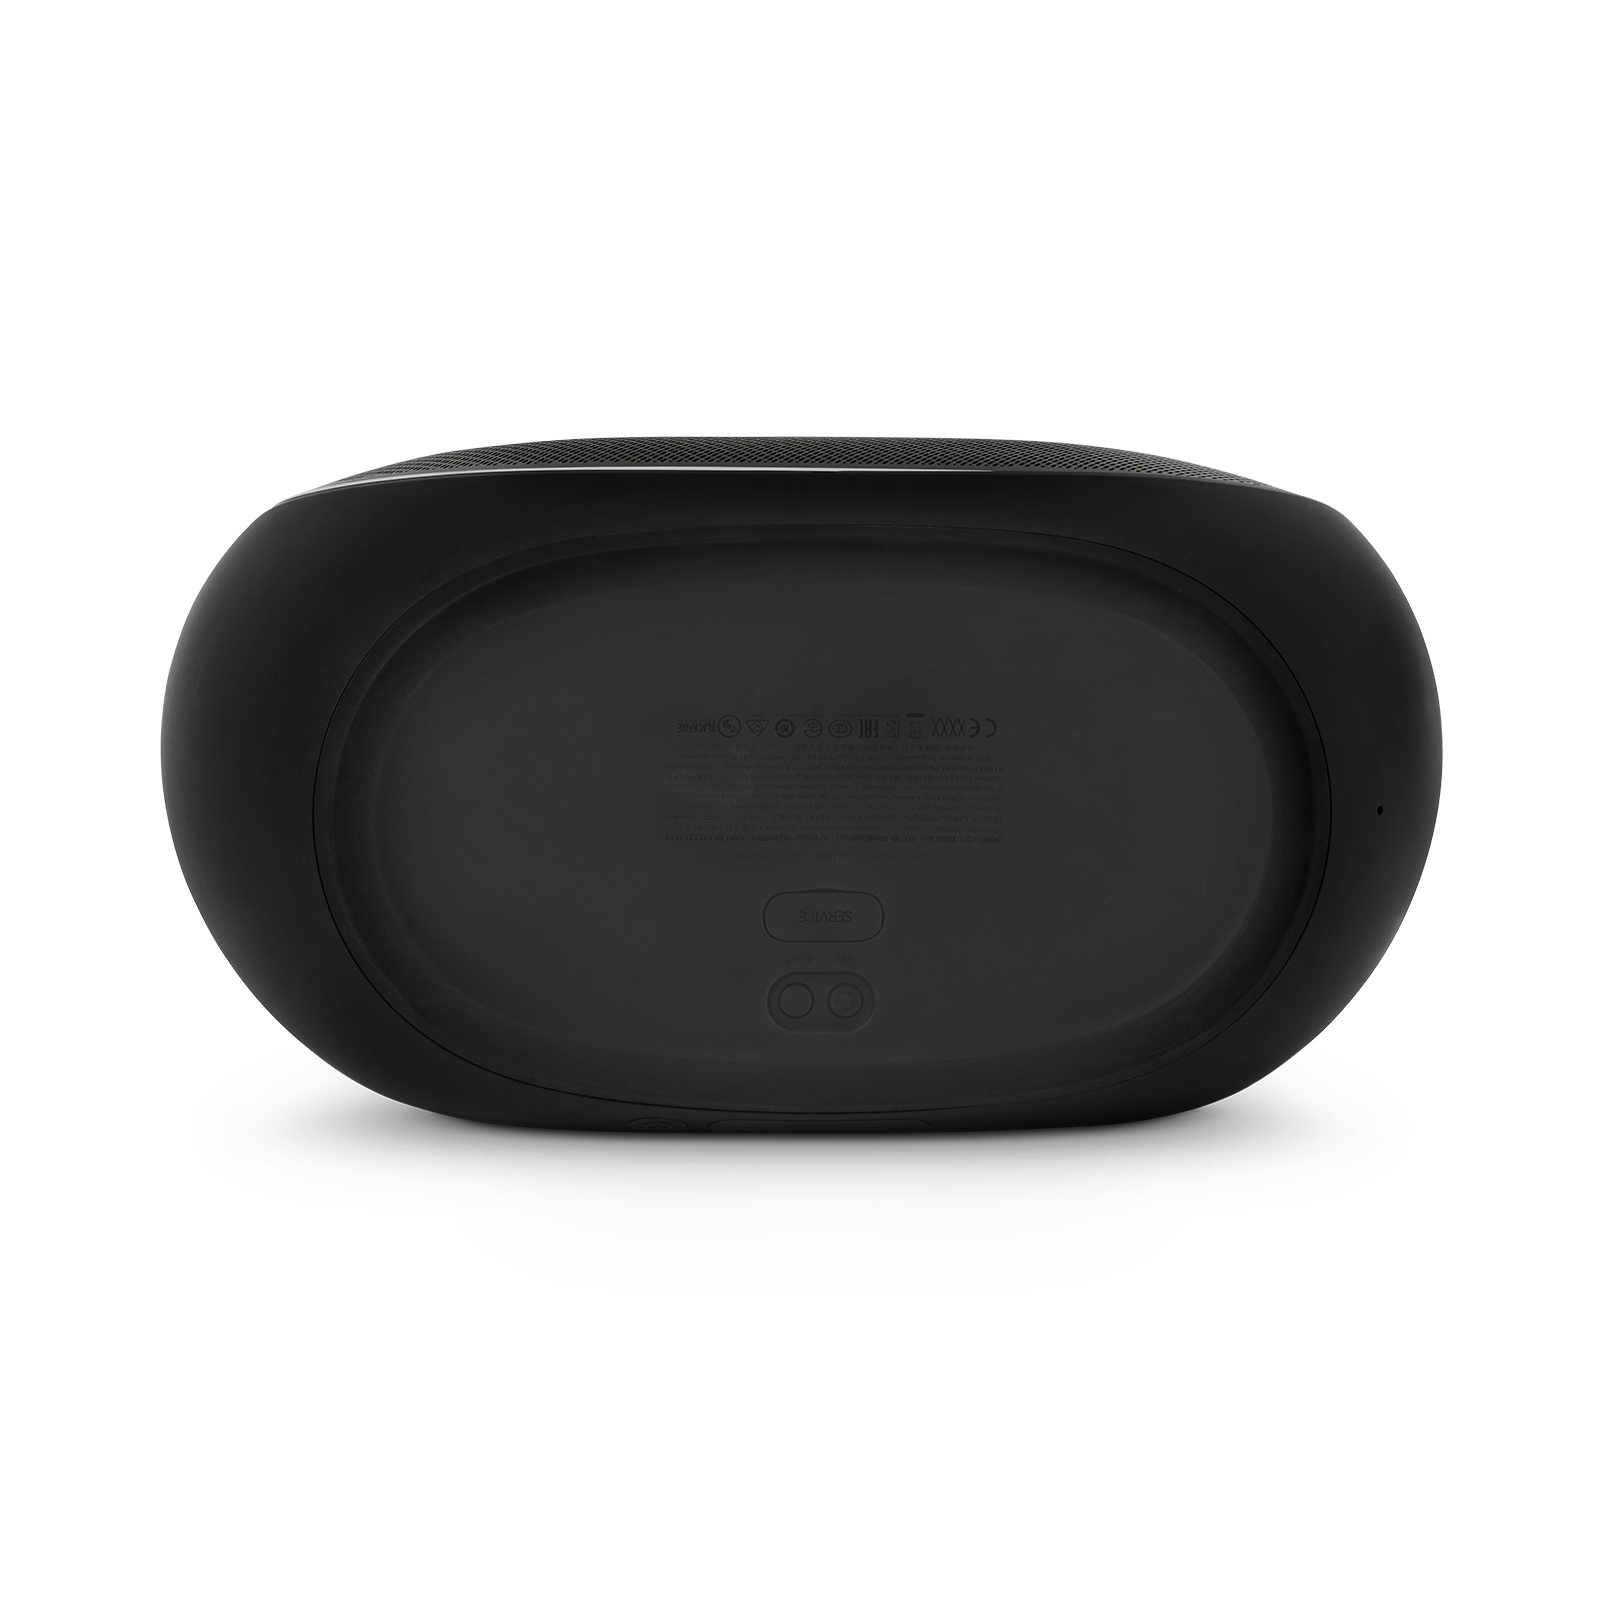 Omni 50+ - Black - Wireless HD Indoor/Outdoor speaker with rechargeable battery - Detailshot 1